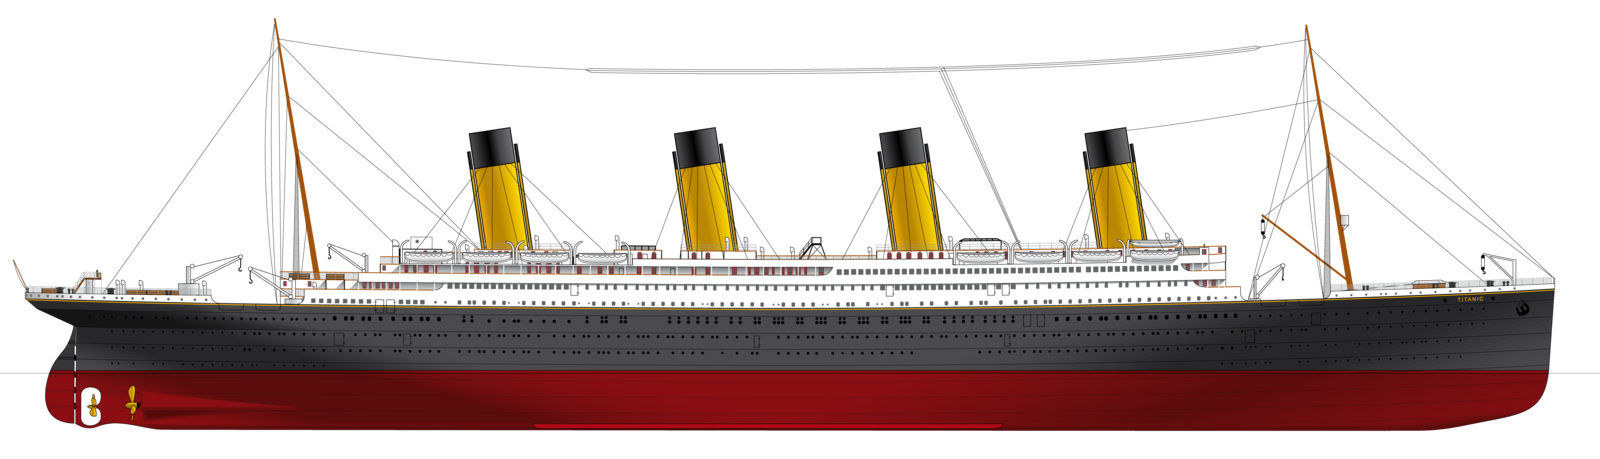 Titanic ship png. White star lines gifts